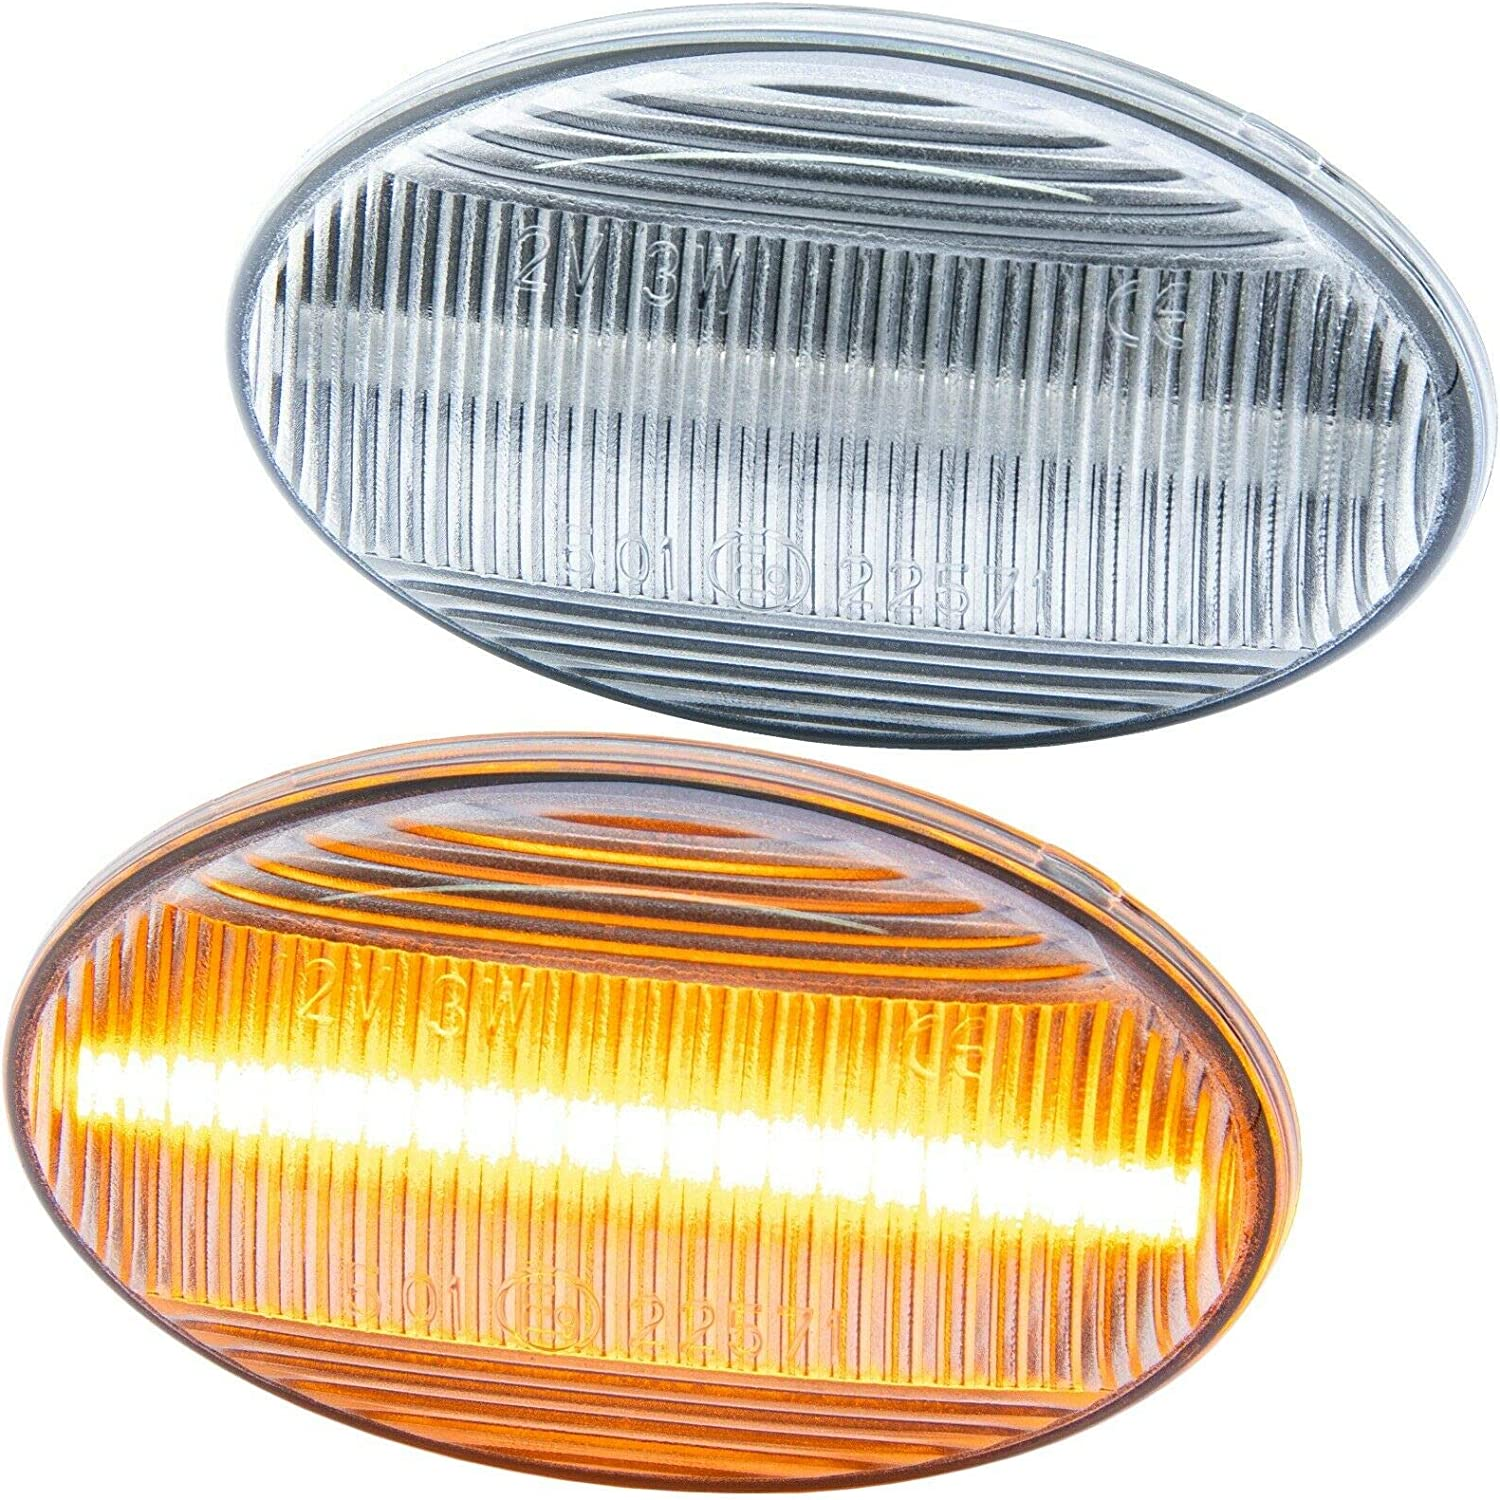 Type 450 452 rm-style 7233 Lot de 2 Clignotants LED compatibles avec Smart Fortwo mod/èles 1998-2007